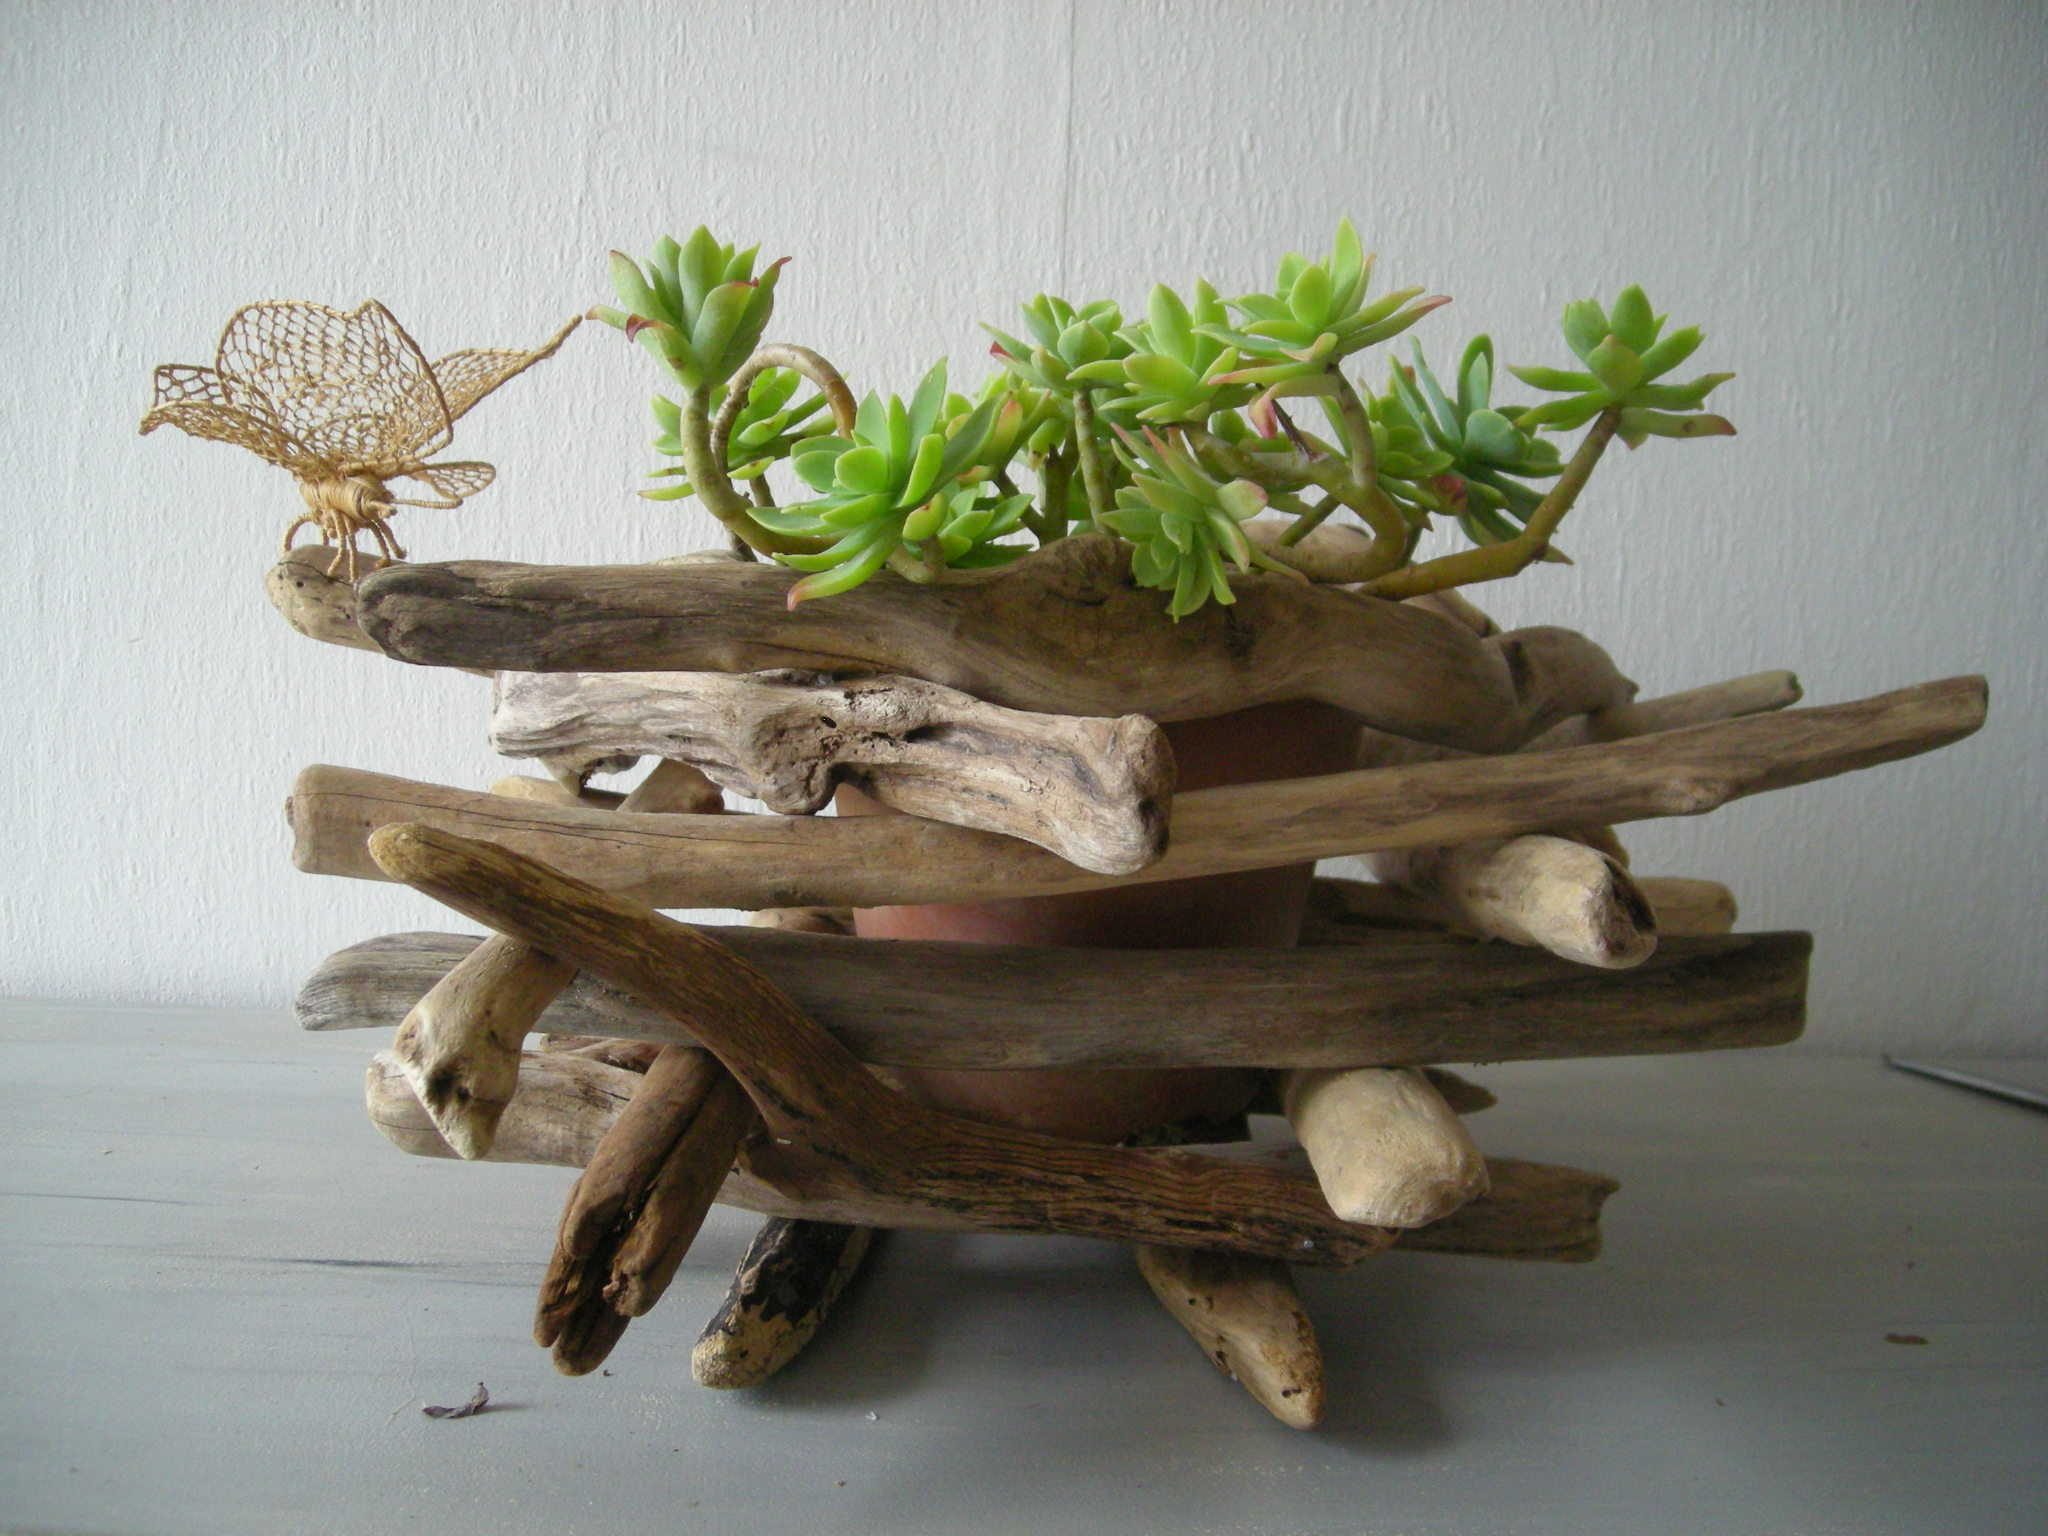 Diy un cache pot nature for Vase avec bois flotte